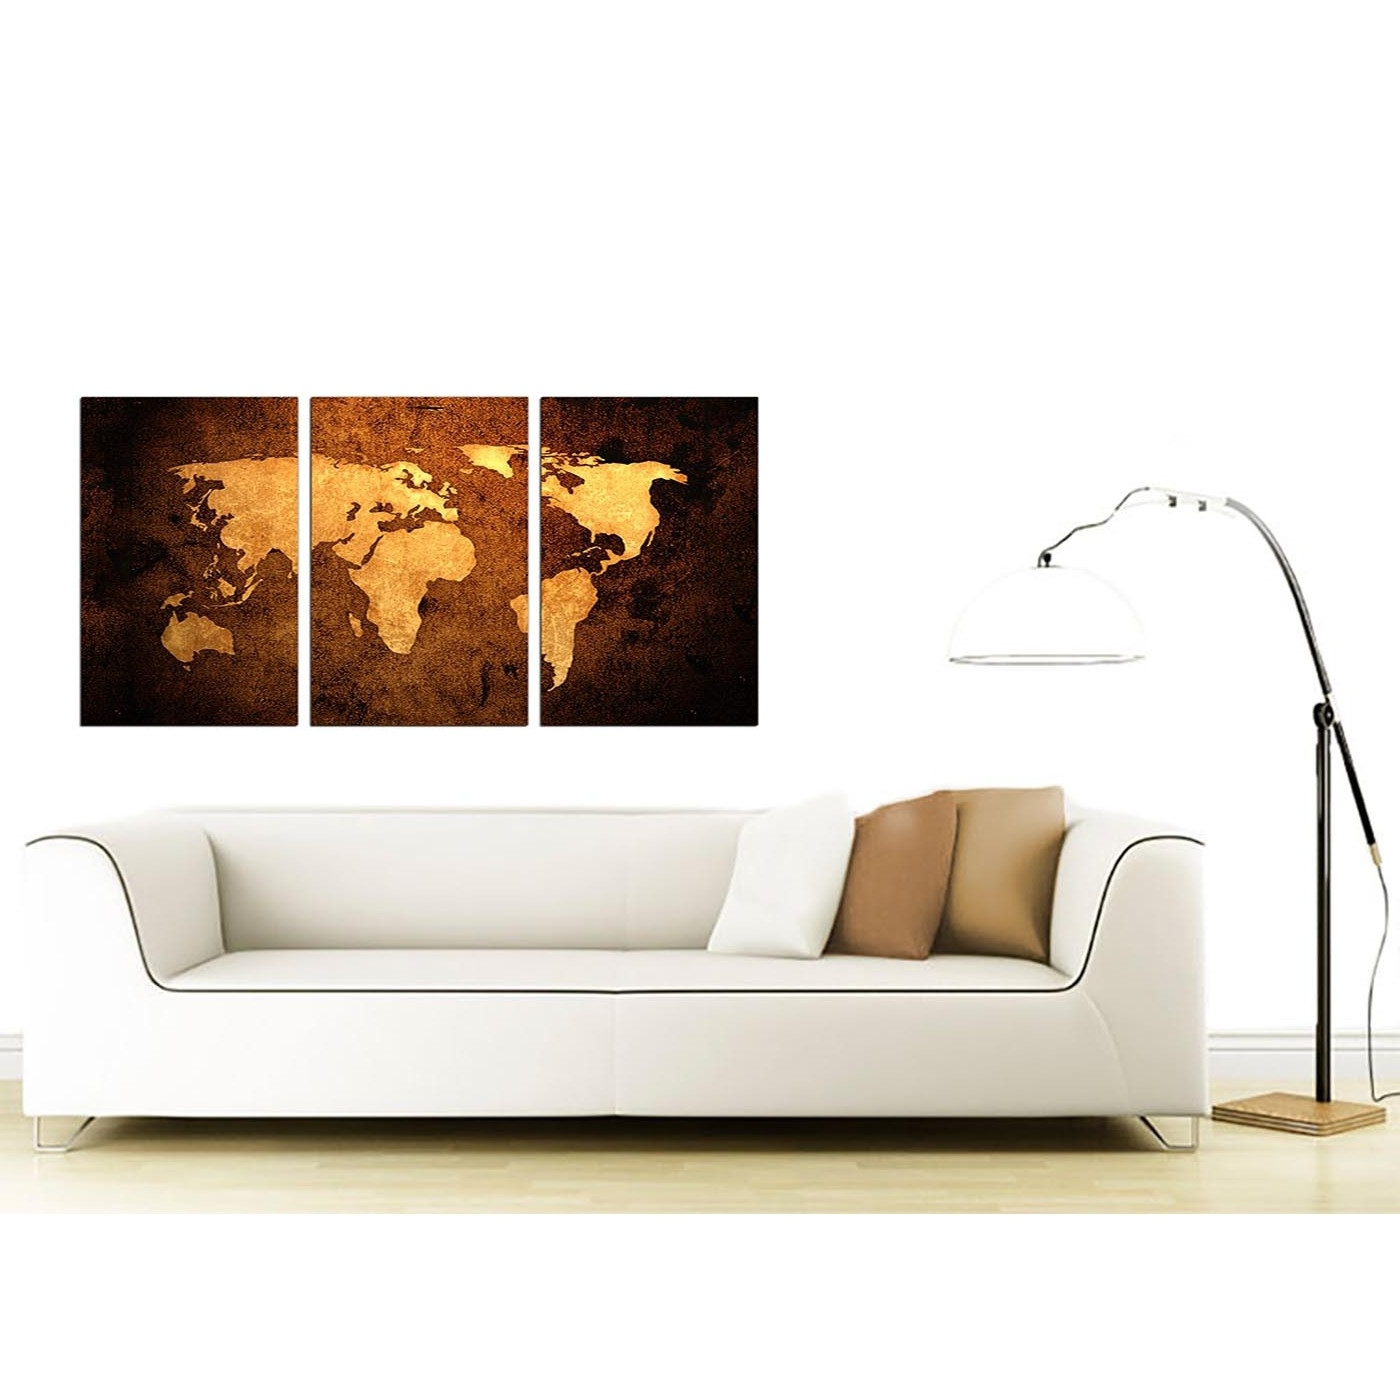 Widely Used Vintage World Map Canvas Wall Art Set Of 3 For Your Bedroom Intended For Canvas Wall Art Sets (Gallery 14 of 15)